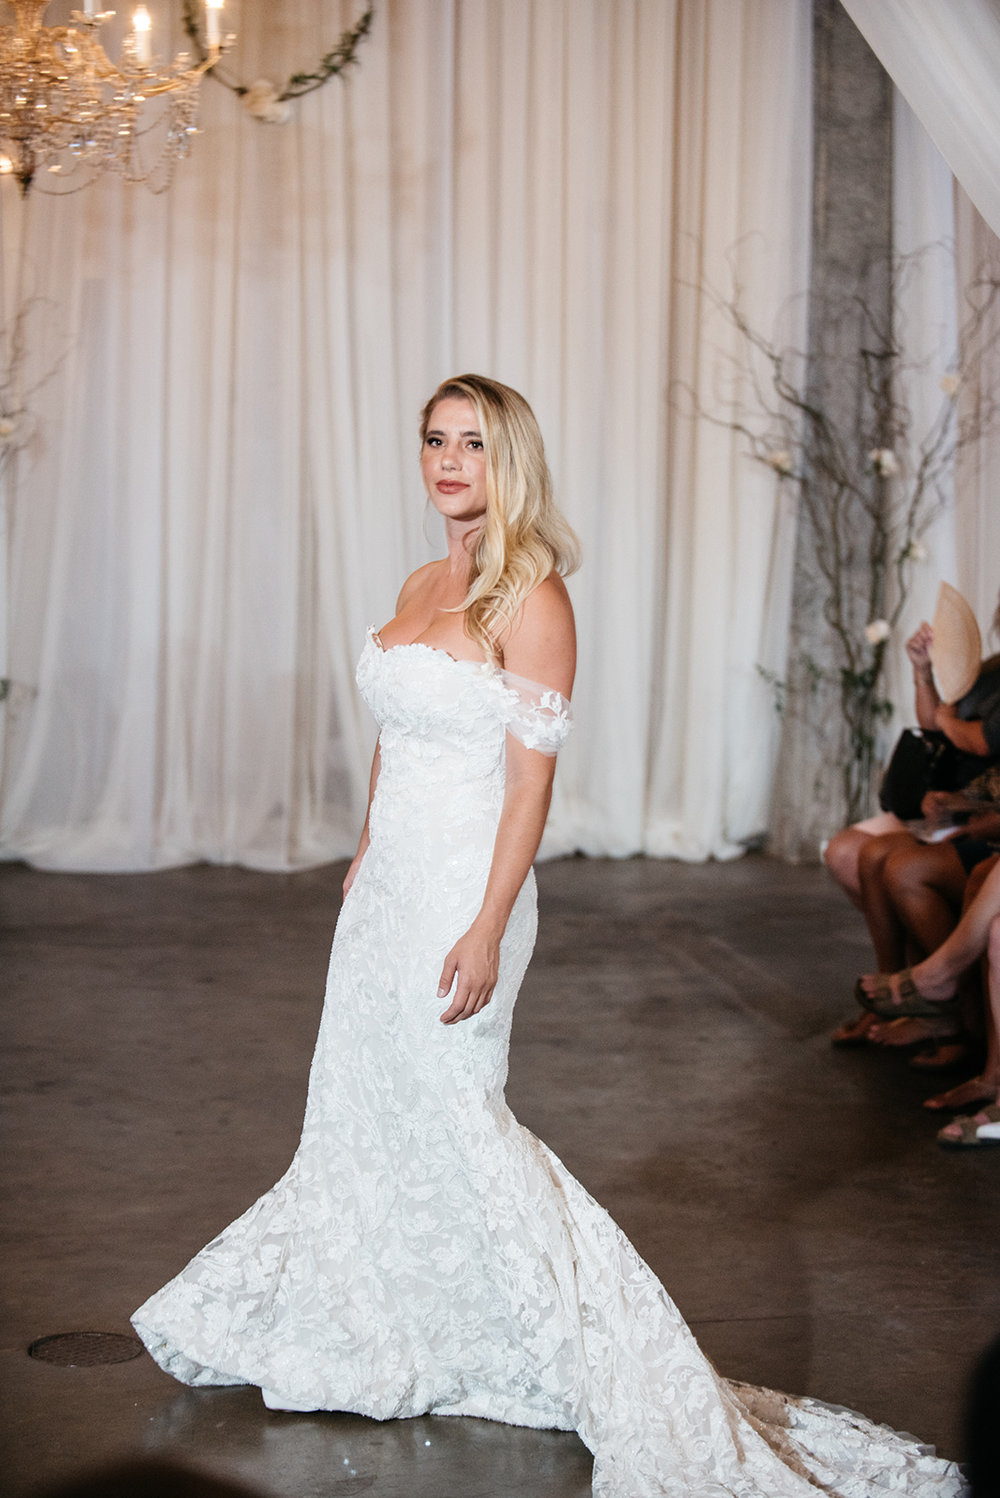 Model Meghan Vanderford wearing Atelier Pronovias